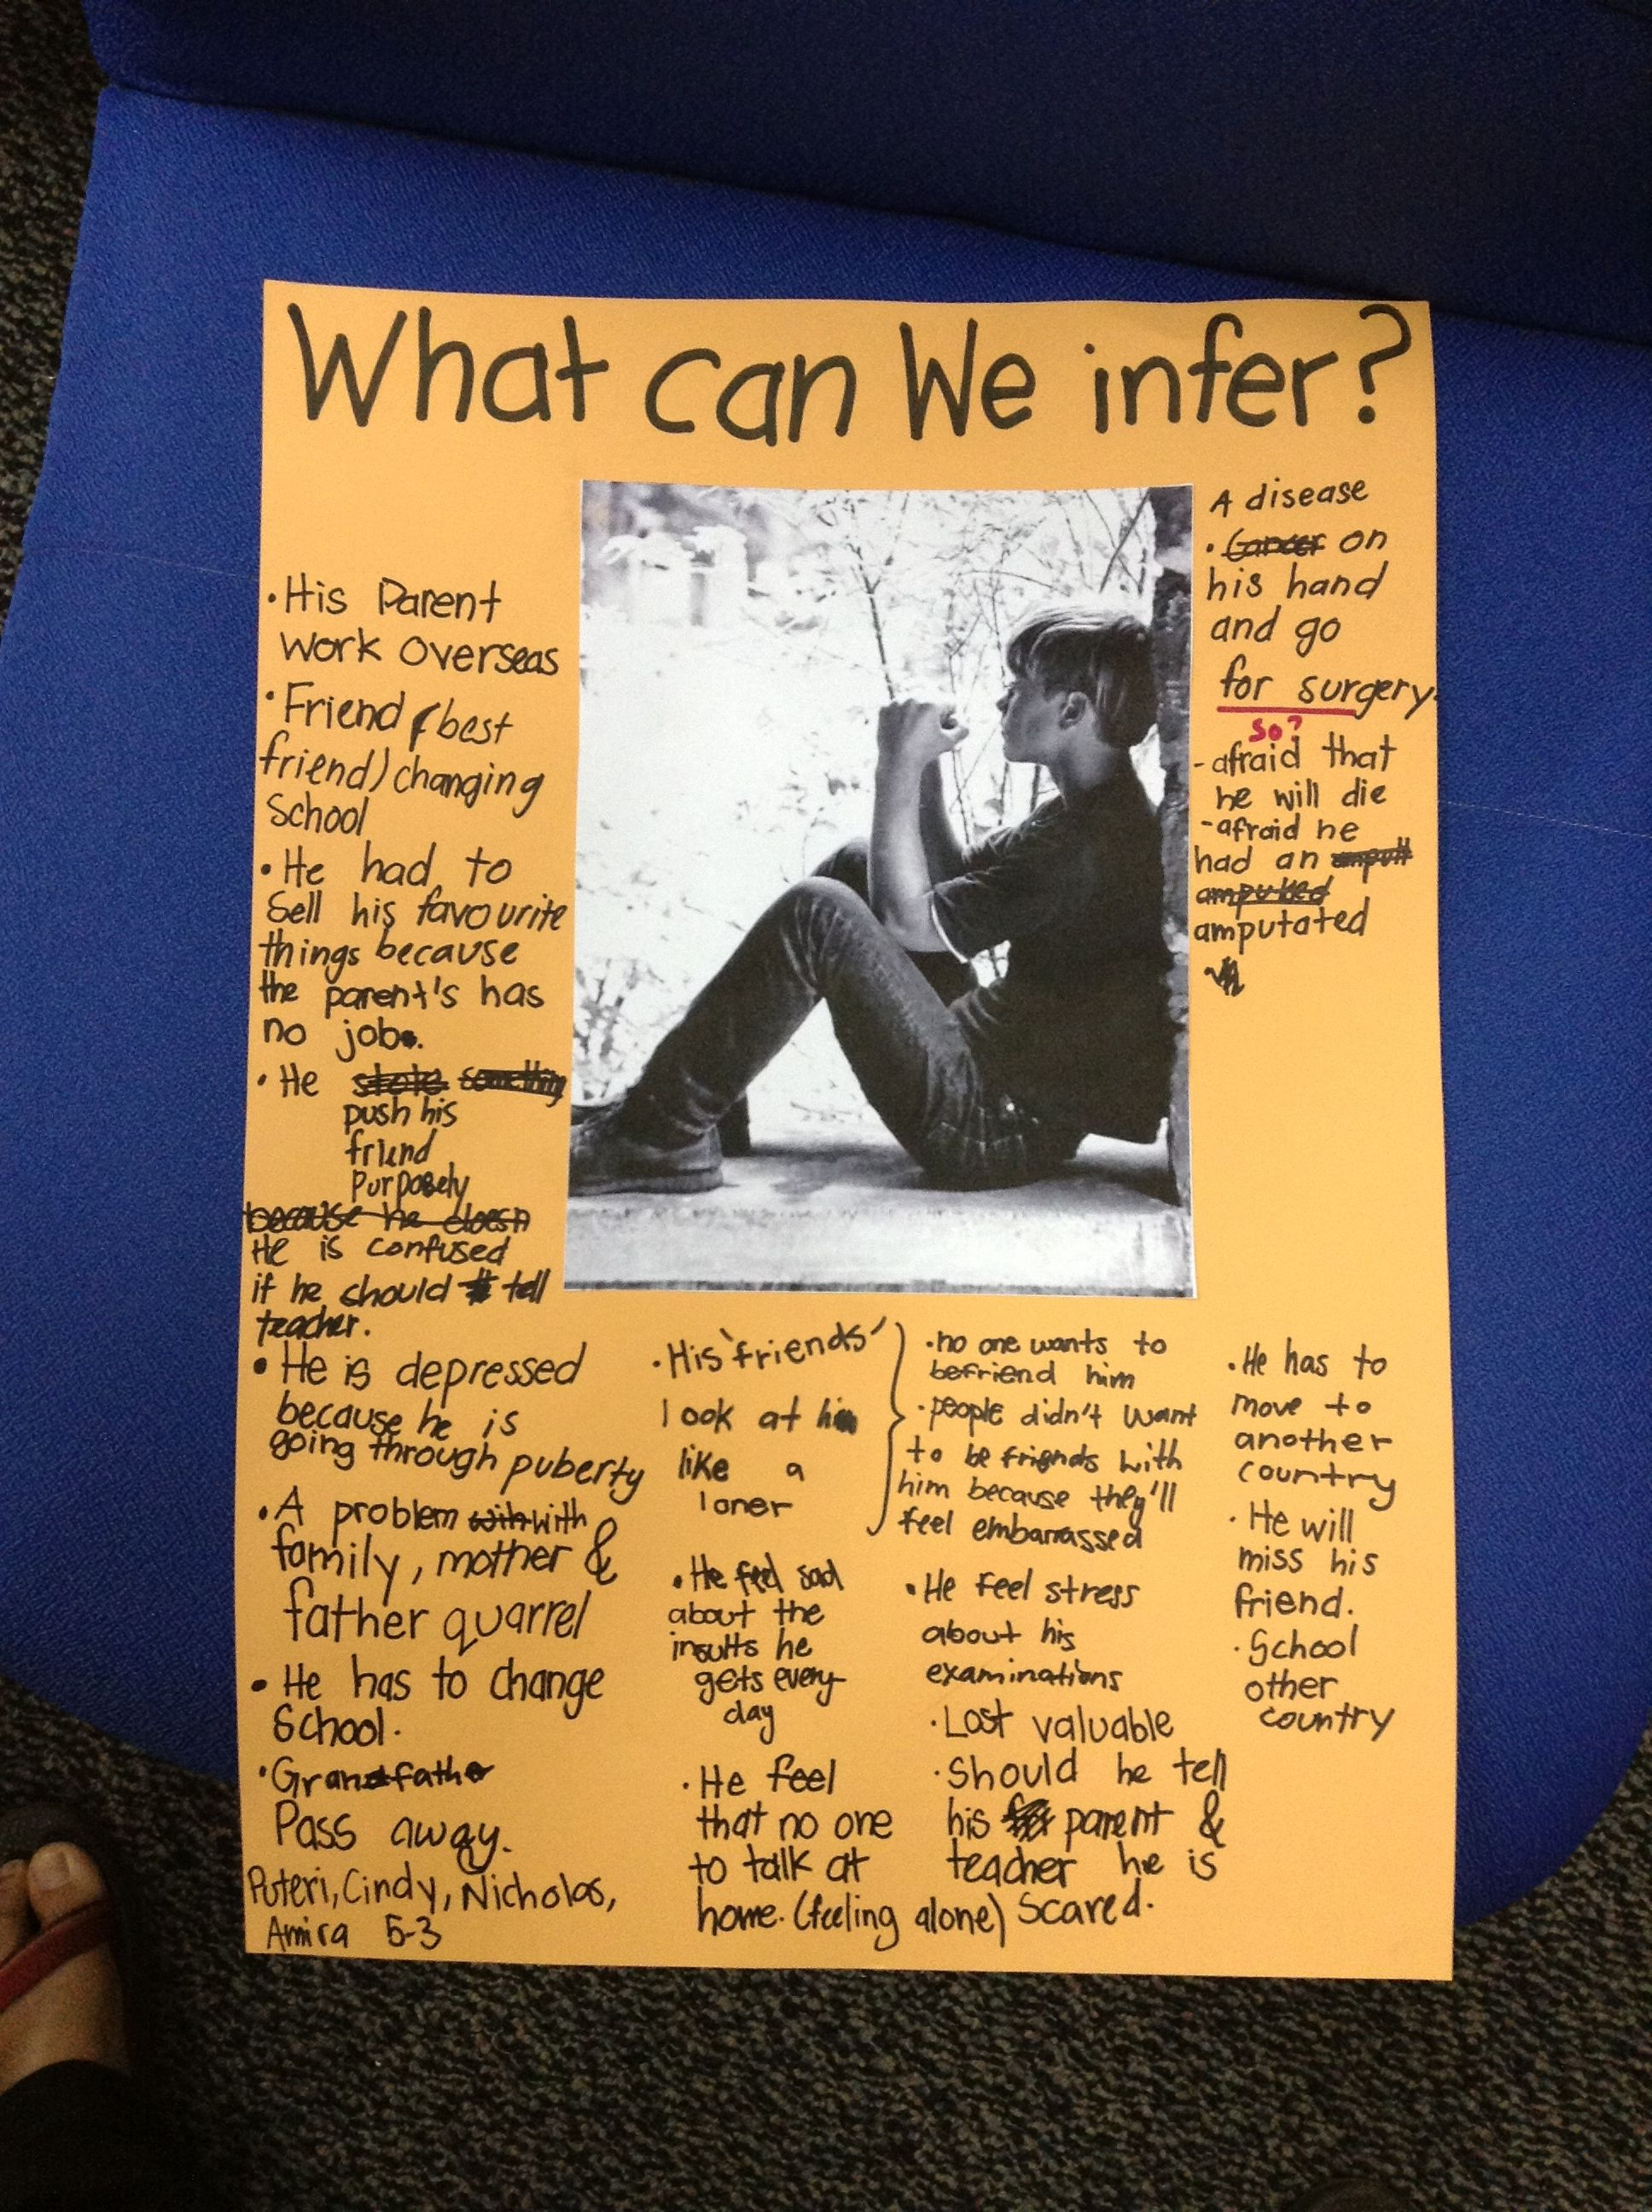 Inference through pictures - What a great idea…find a good